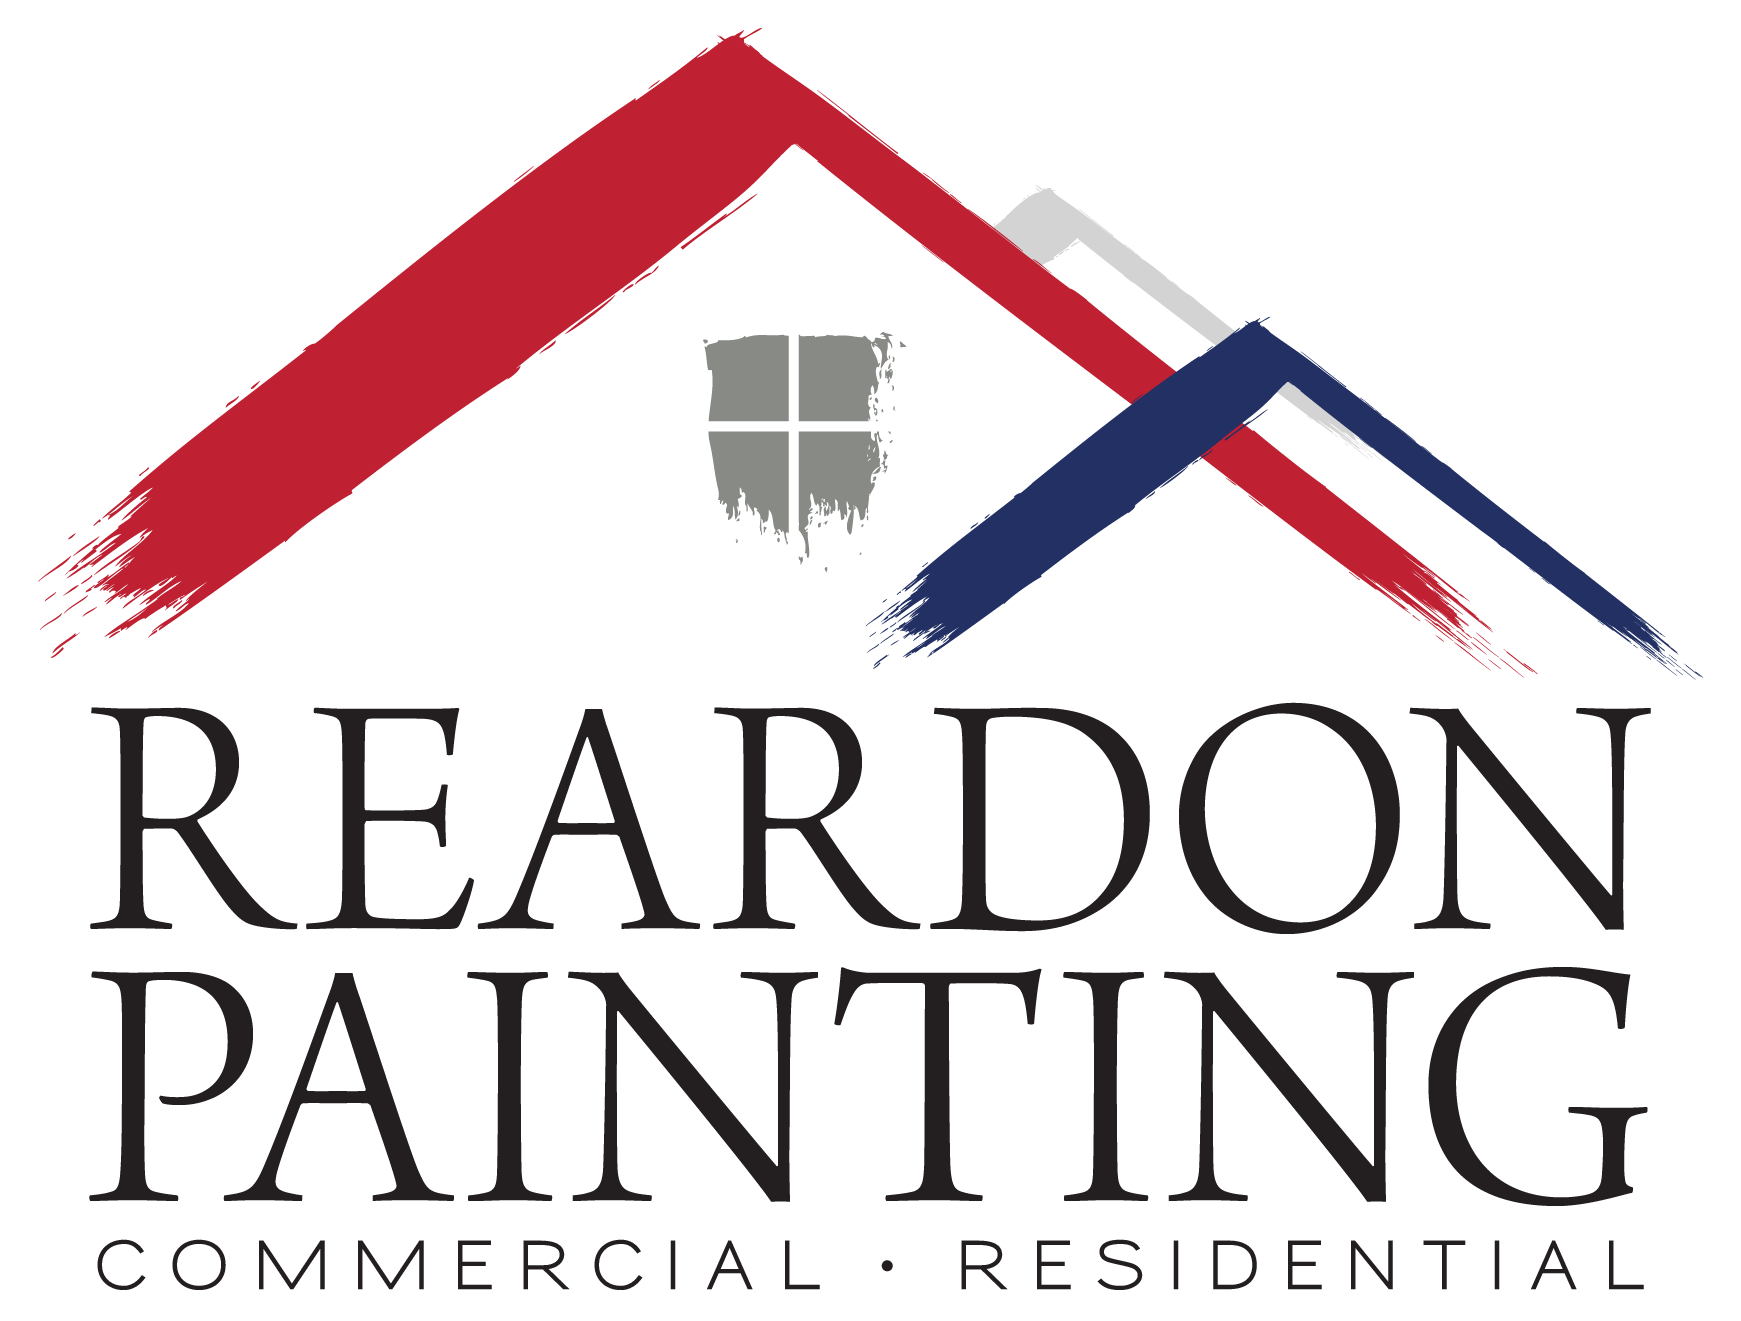 Reardon Painting - Commercial & Residential - Logo